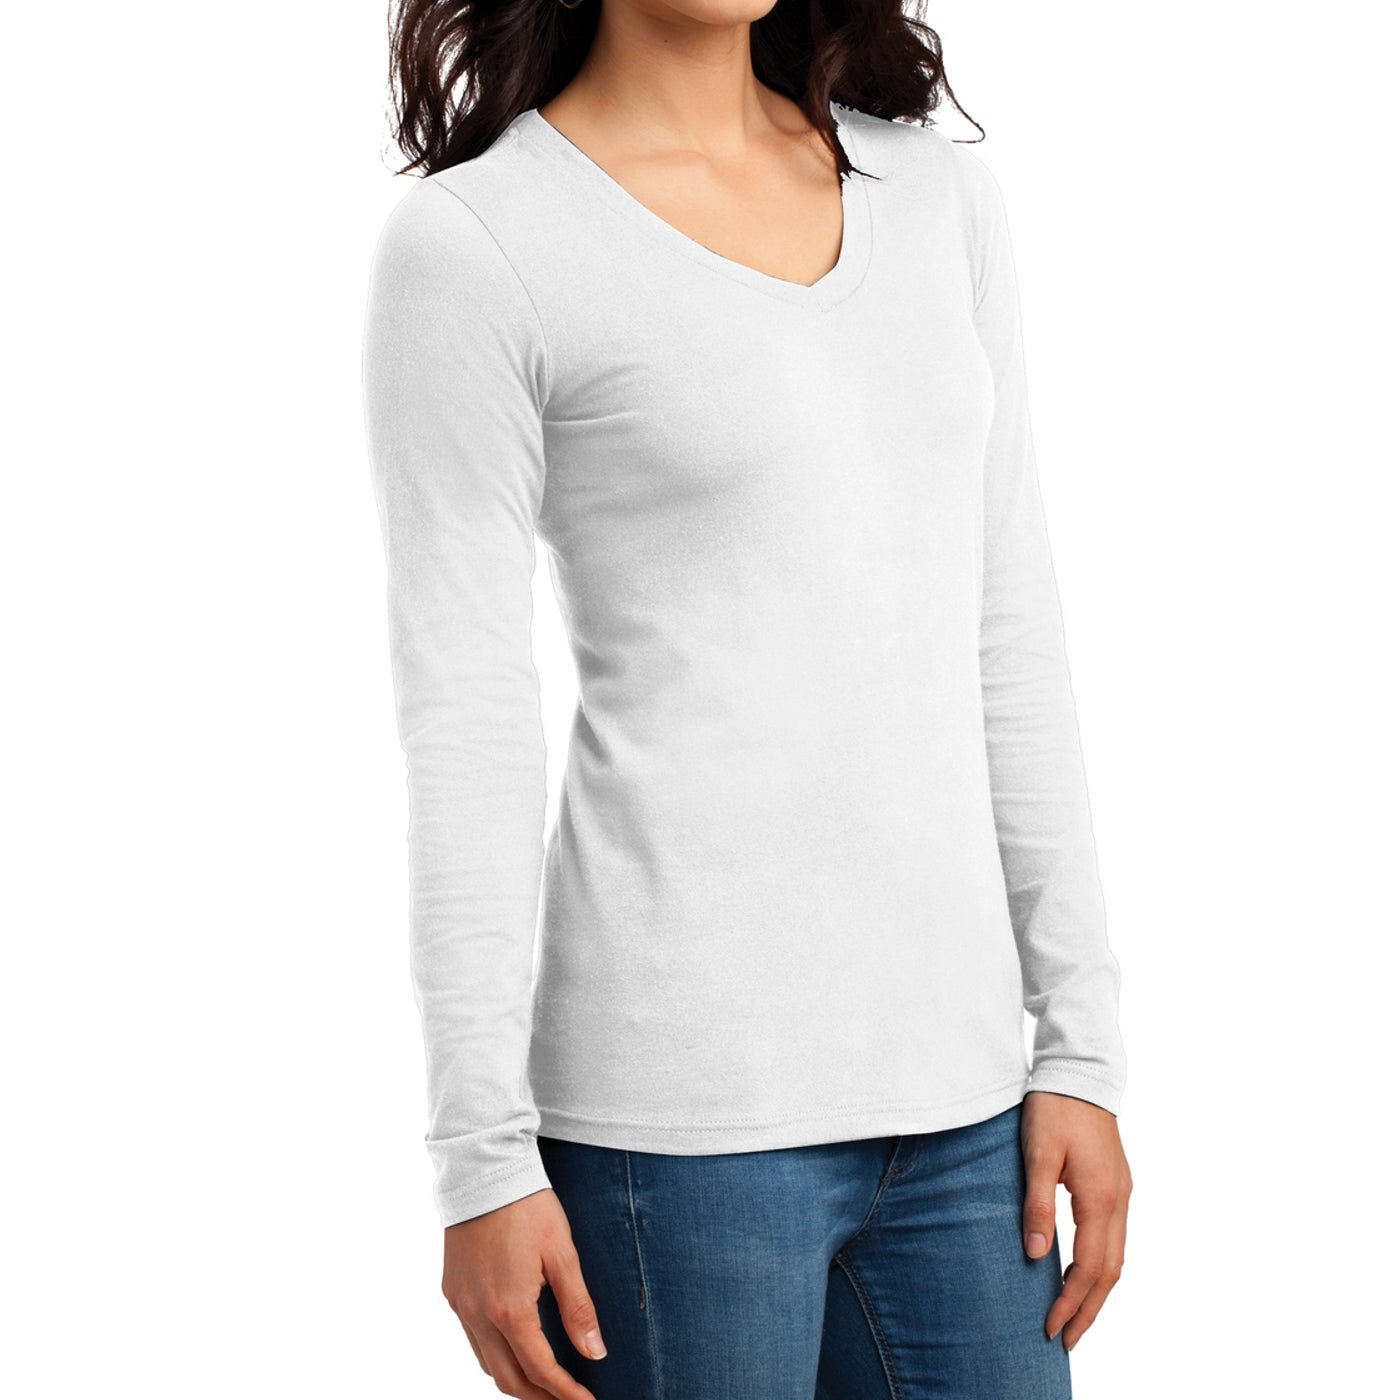 Women's Juniors The Concert Tee Long Sleeve V-Neck - White